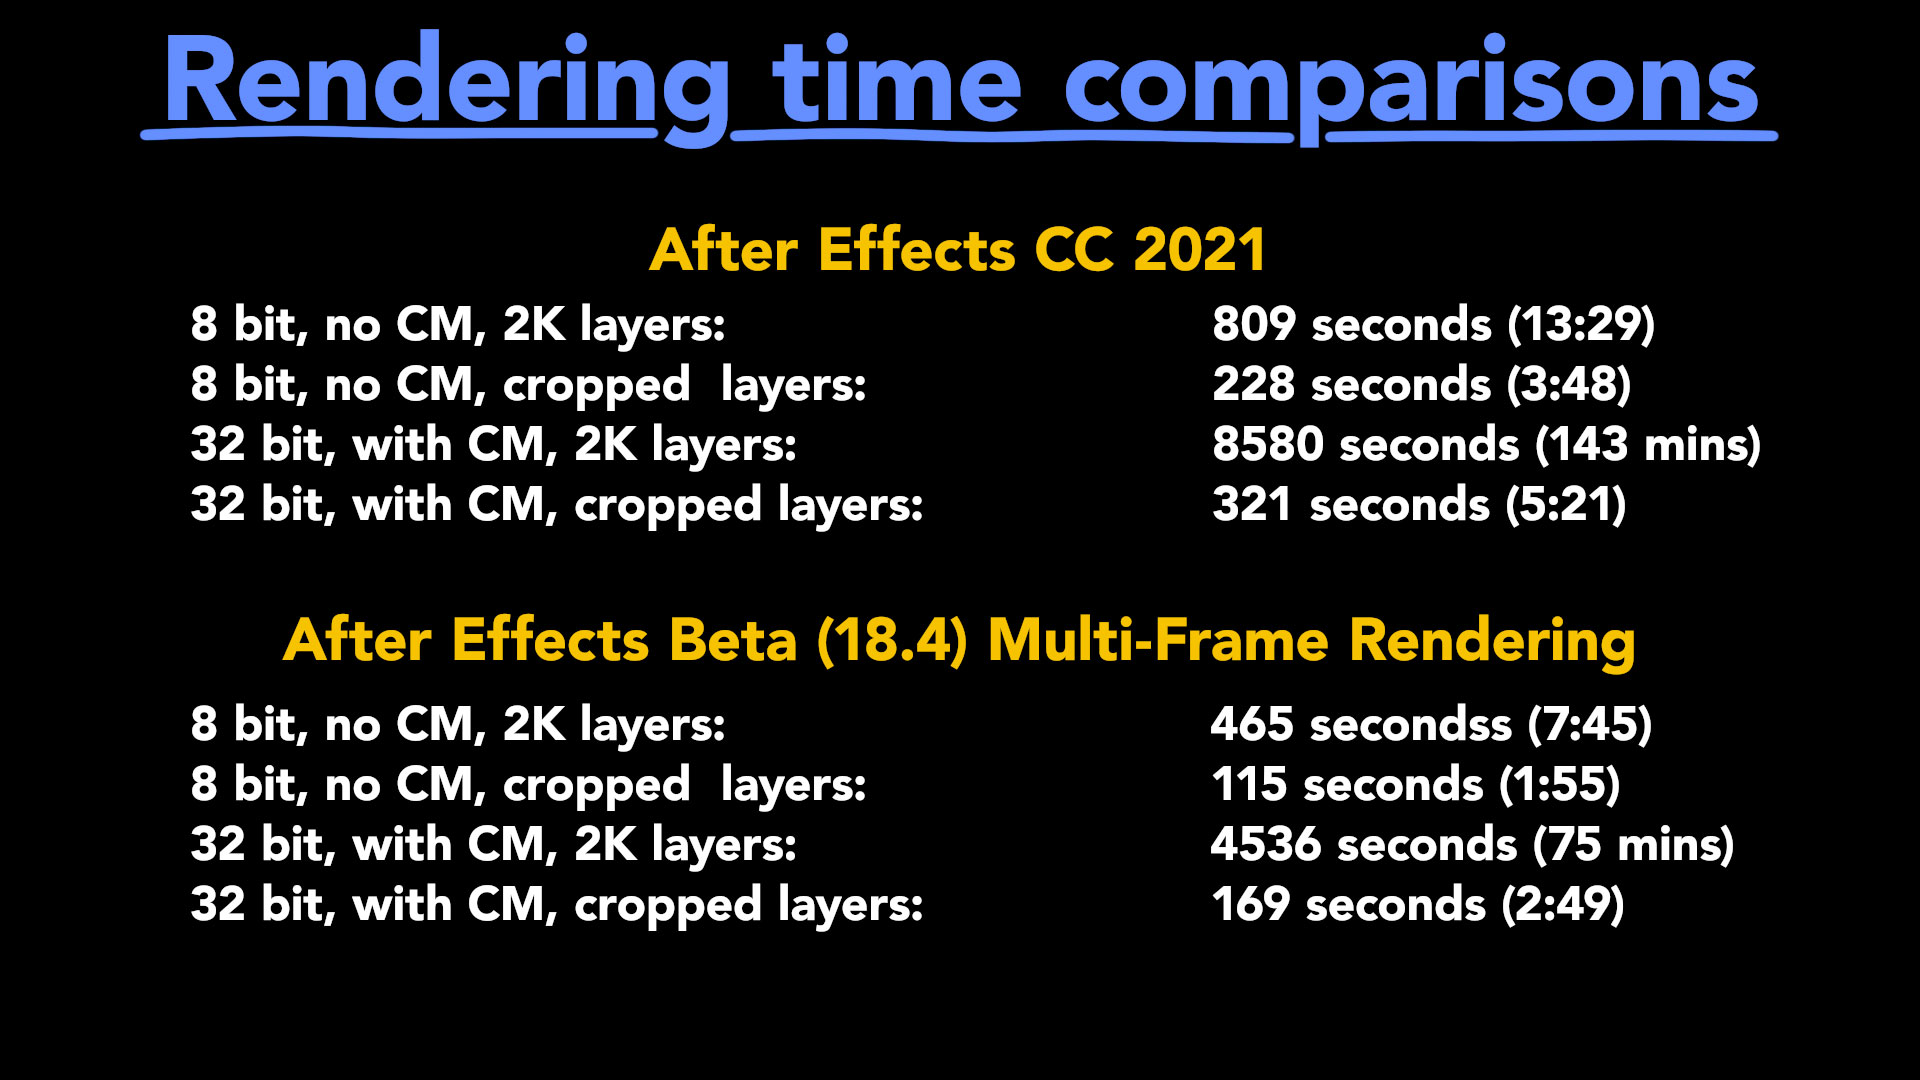 After Effects: Making a composition render 70 x faster 7